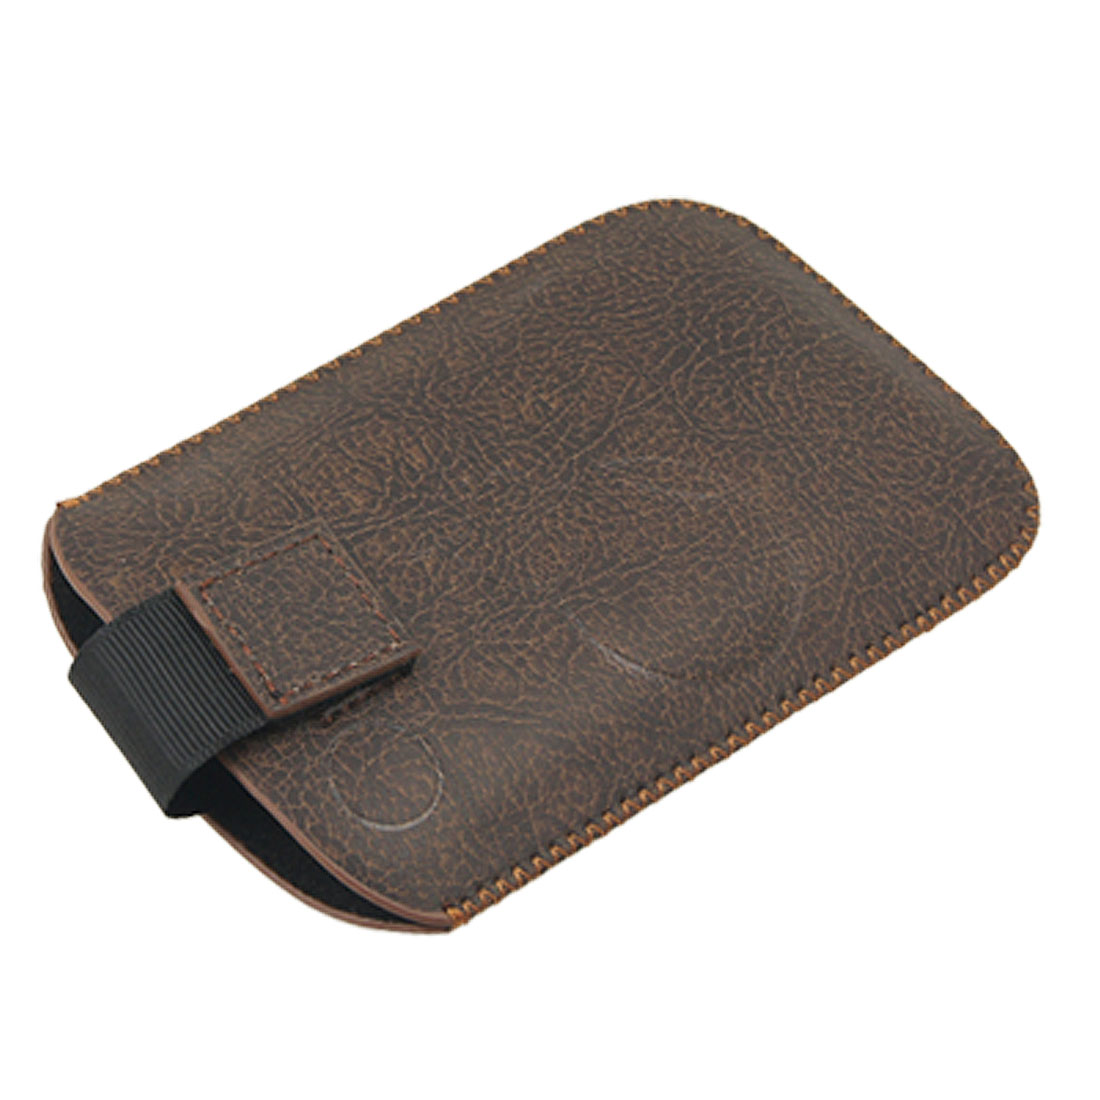 Round Print Brown Faux Leather Sleeve Holder for HTC Wildfire G8